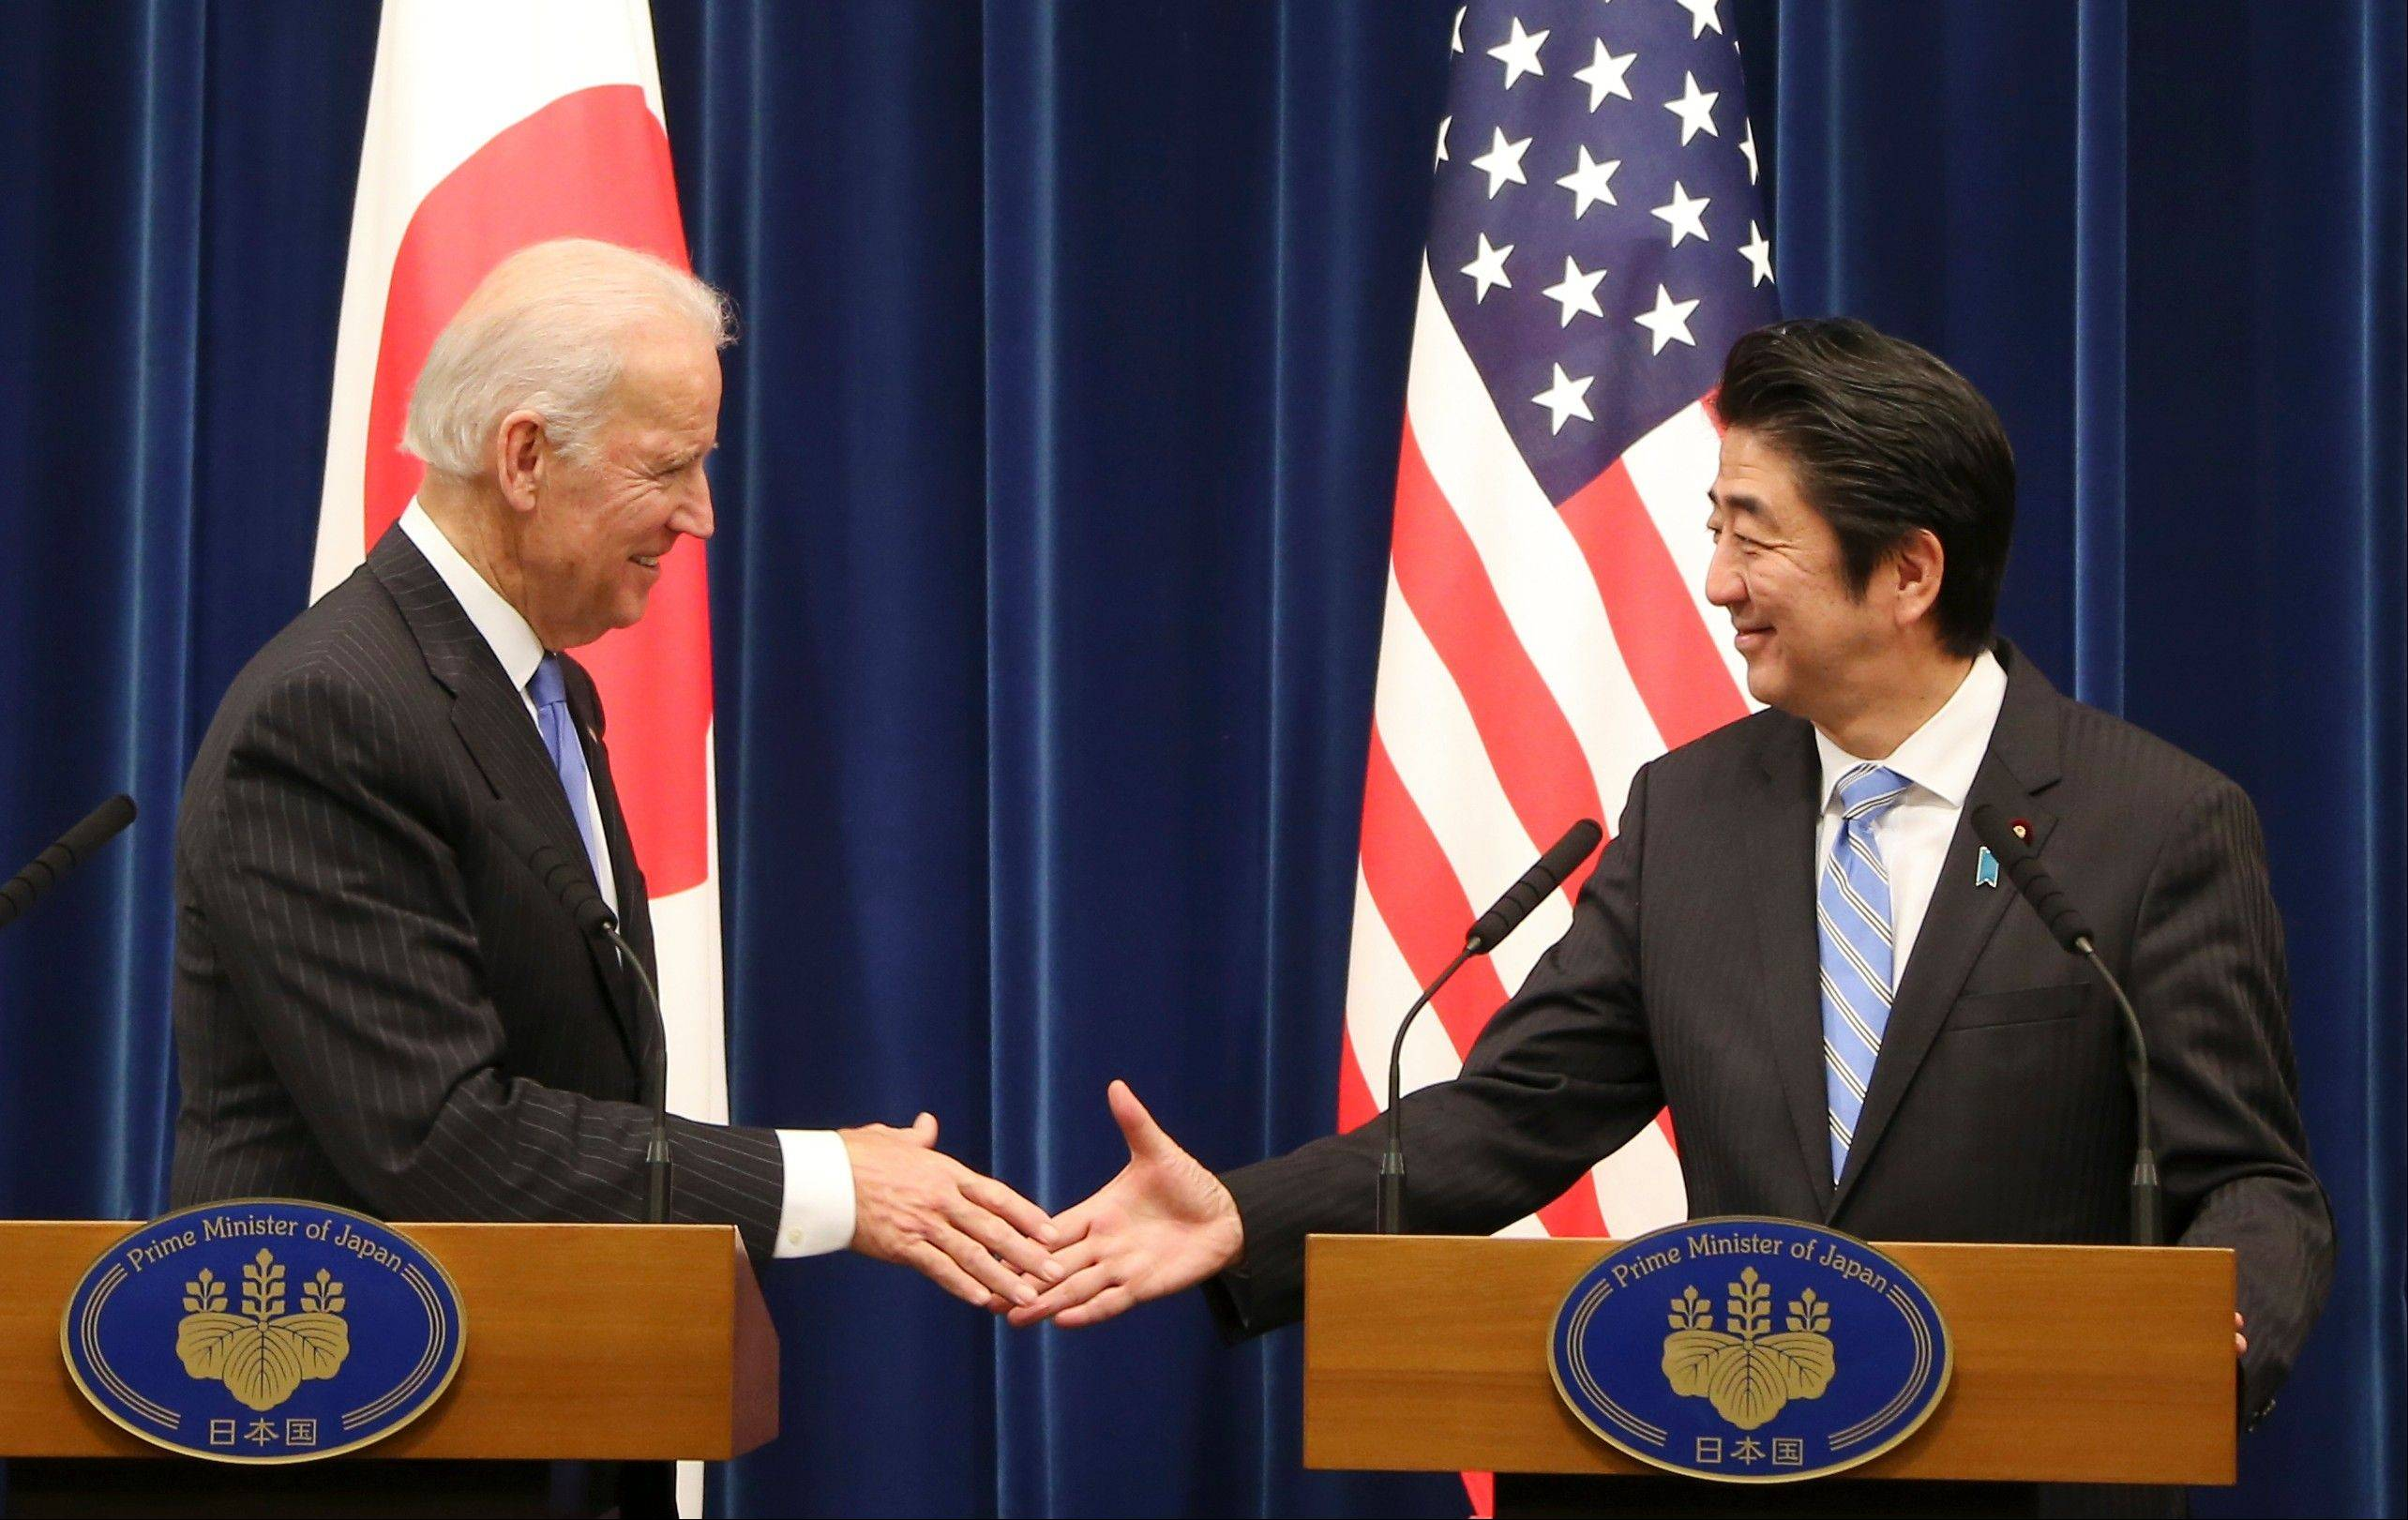 U.S. Vice President Joe Biden shakes hands with Japanese Prime Minister Shinzo Abe at the end of a joint press conference following their meeting at Abe's official residence in Tokyo Tuesday. Biden voiced strong opposition Tuesday to China's new air defense zone above a set of disputed islands, showing a united front with an anxious Japan as tension in the region simmered.